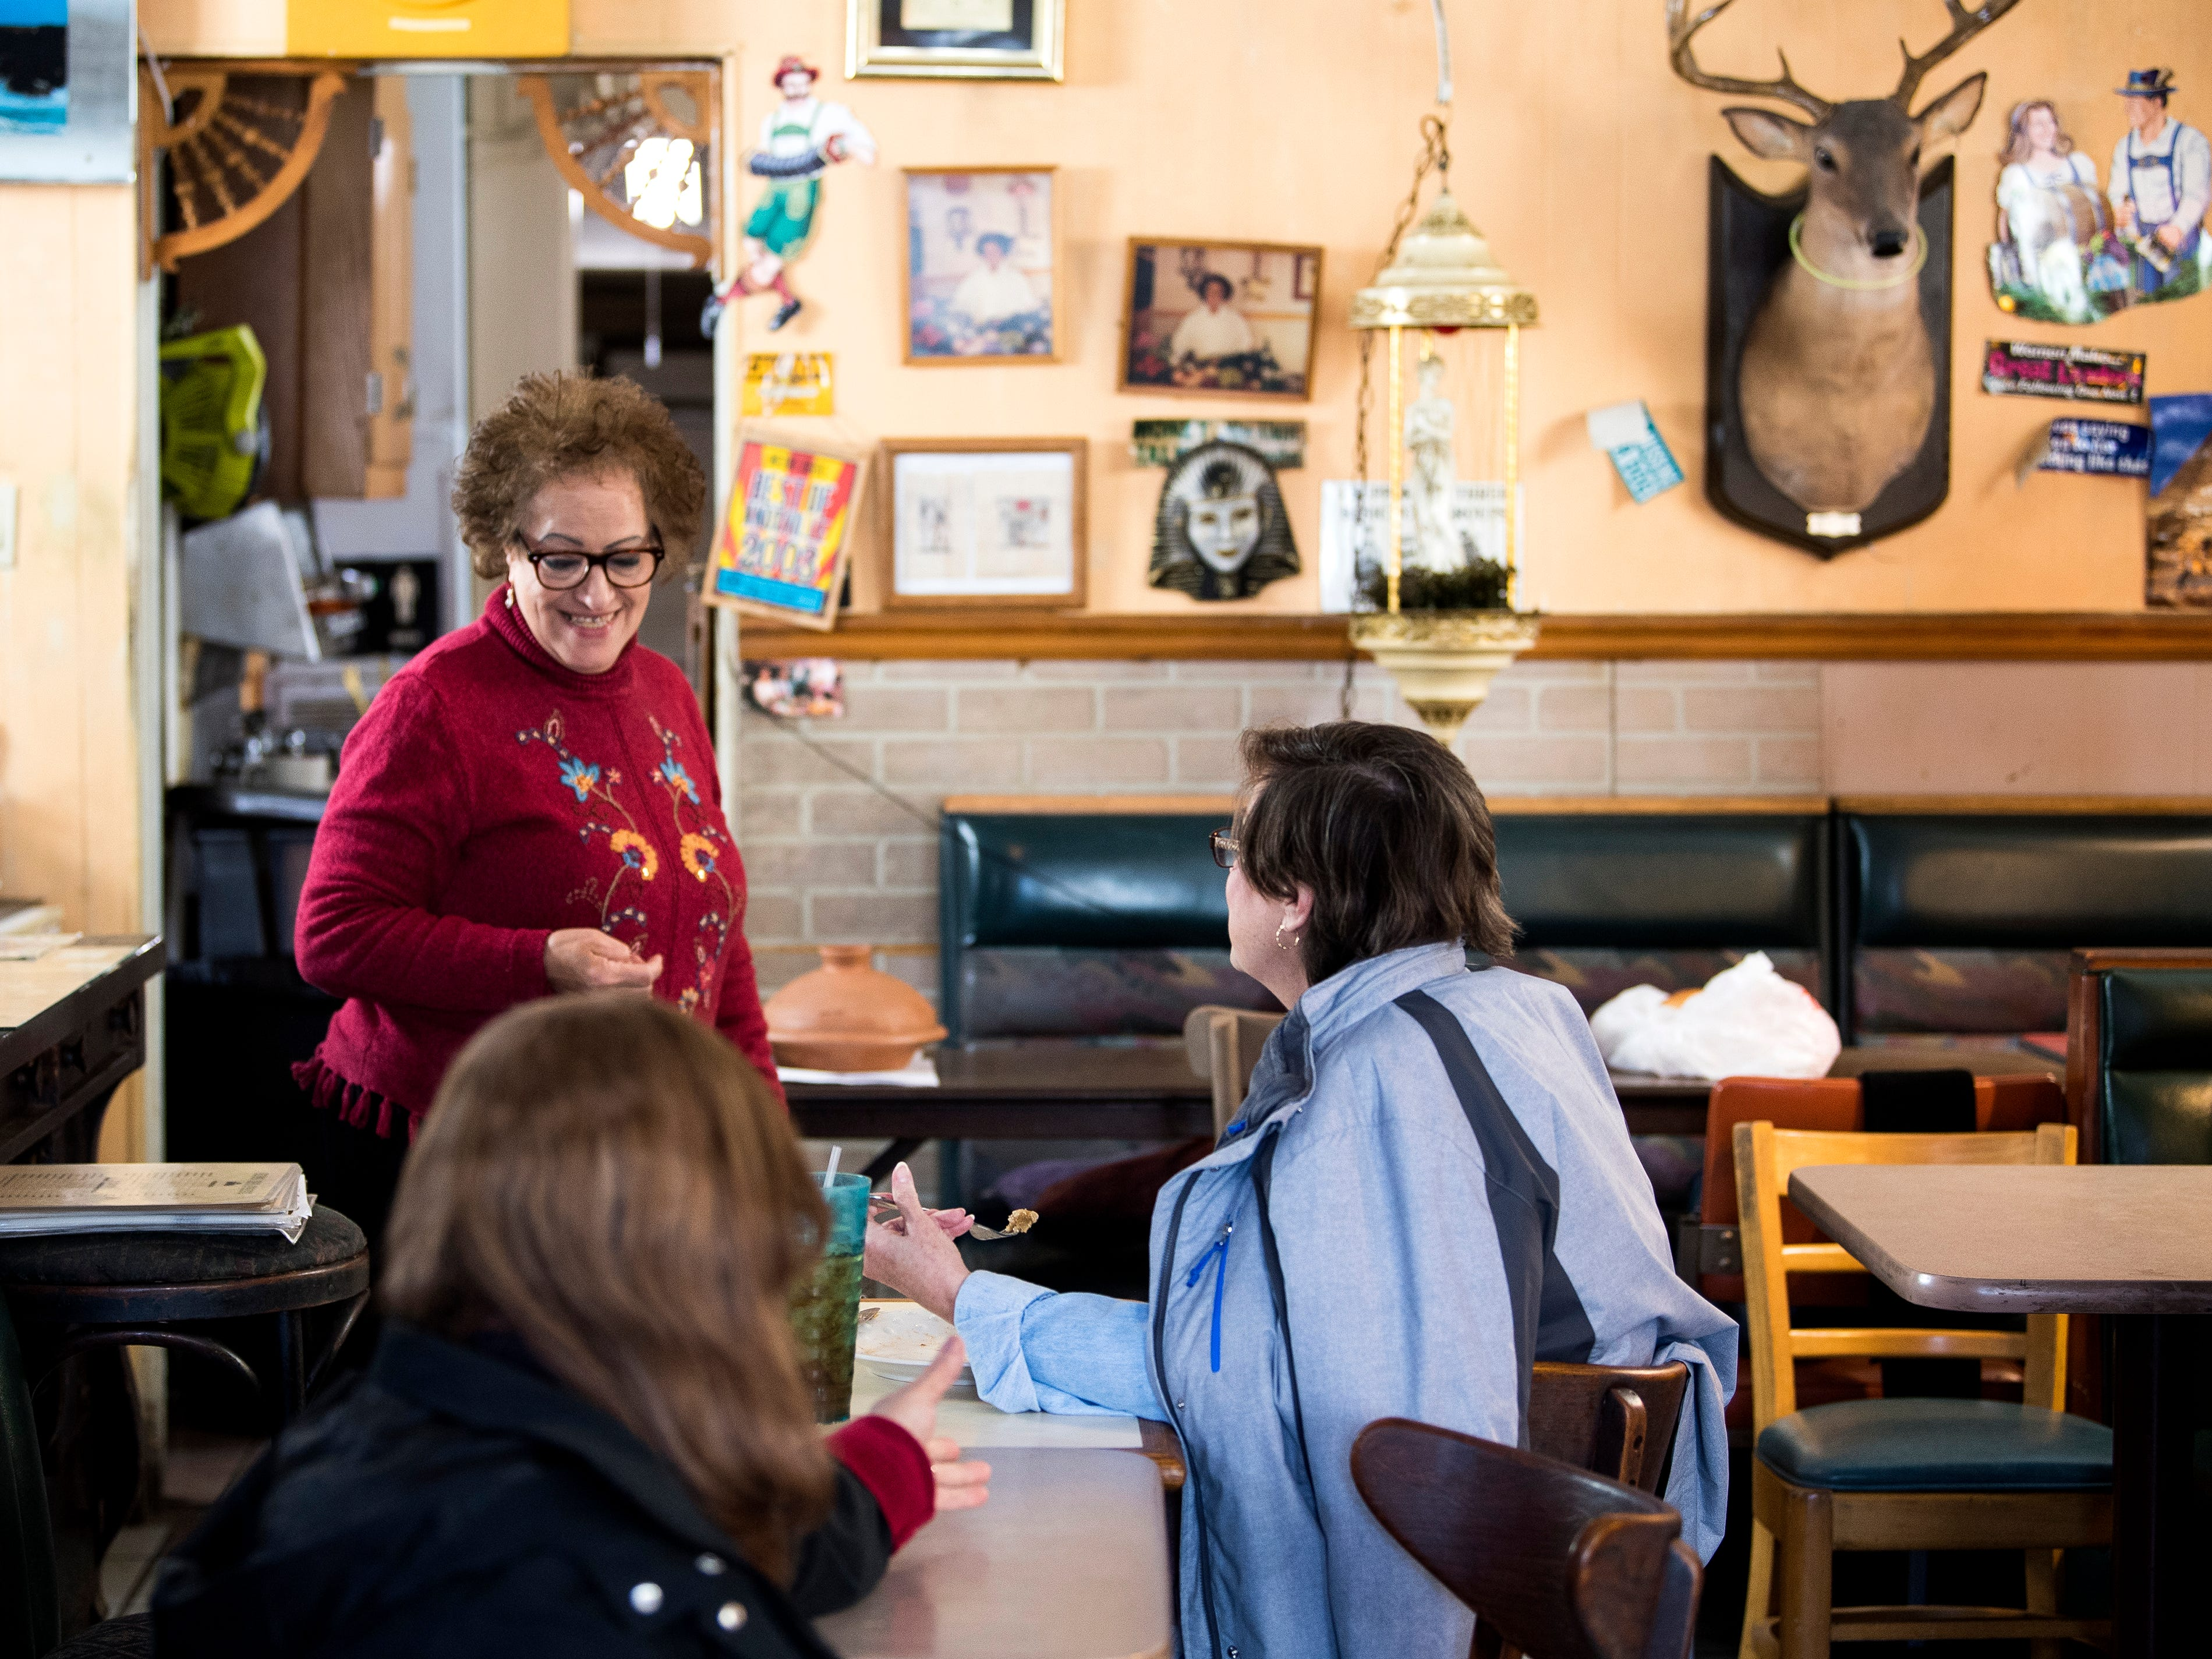 King Tut Grill owner Seham Girgis, left, checks on a customer at her South Knoxville restaurant on Wednesday, February 13, 2019. After 30 years, the restaurant will close in part because of an utility upgrade required by KUB that the restaurant cannot afford.